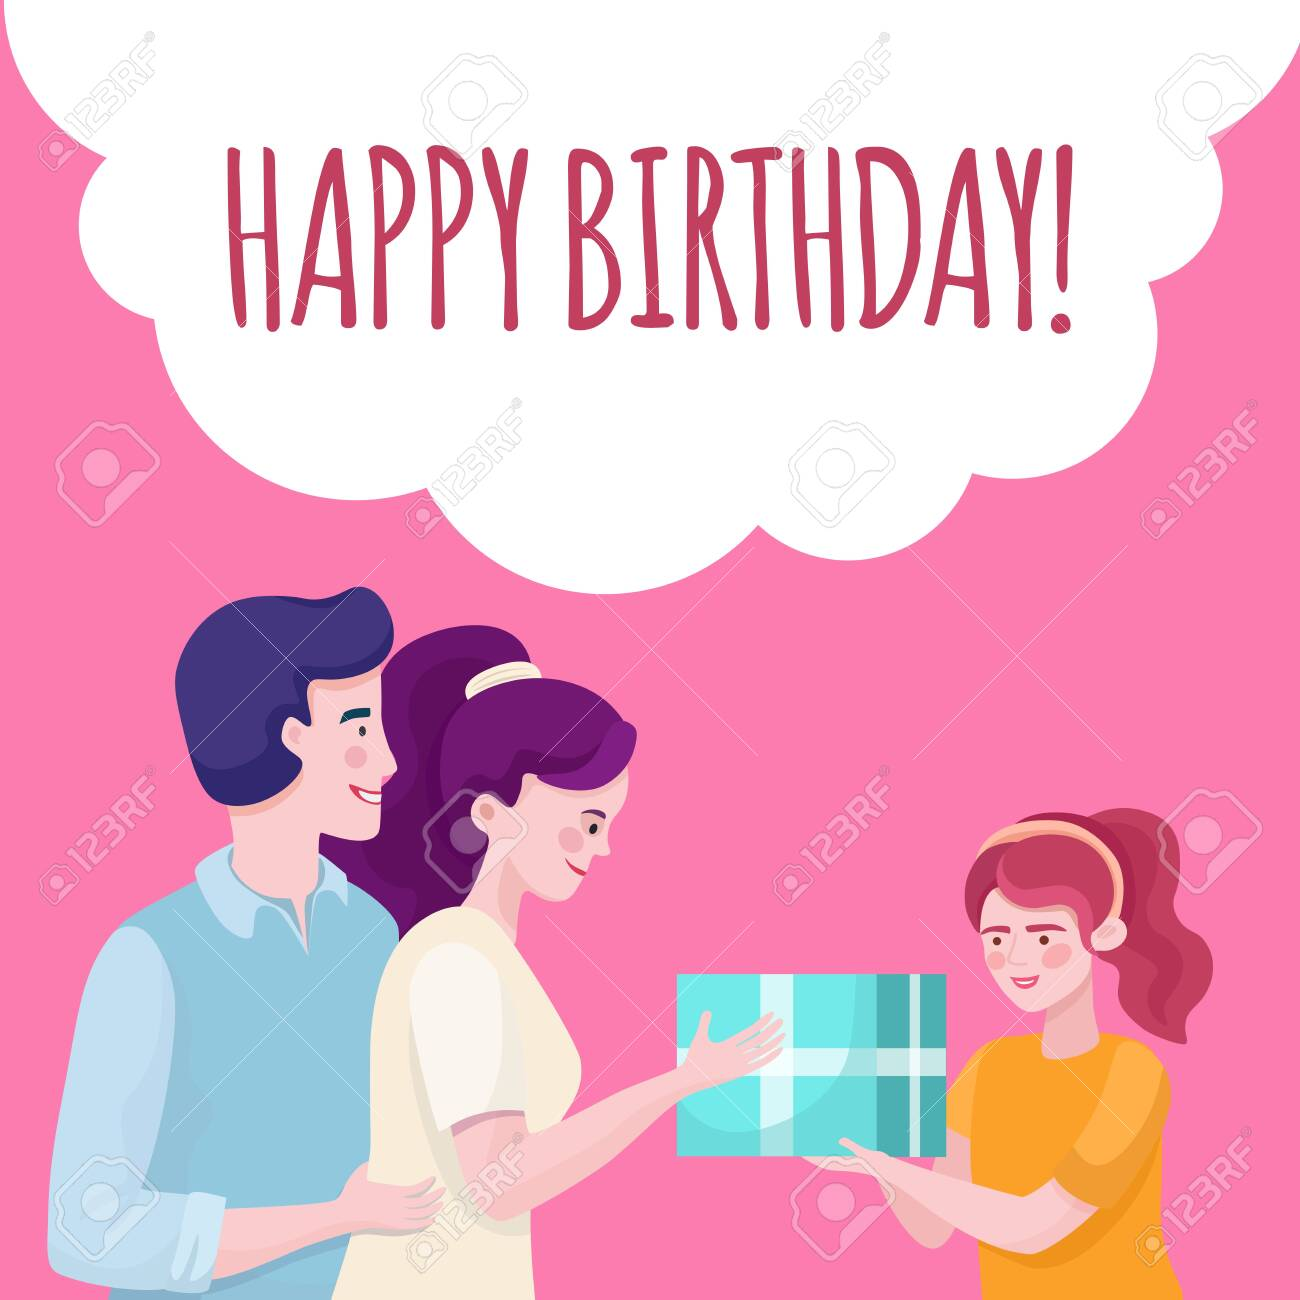 Happy Birthday Banner Design Template Family Congratulating Royalty Free Cliparts Vectors And Stock Illustration Image 140893600